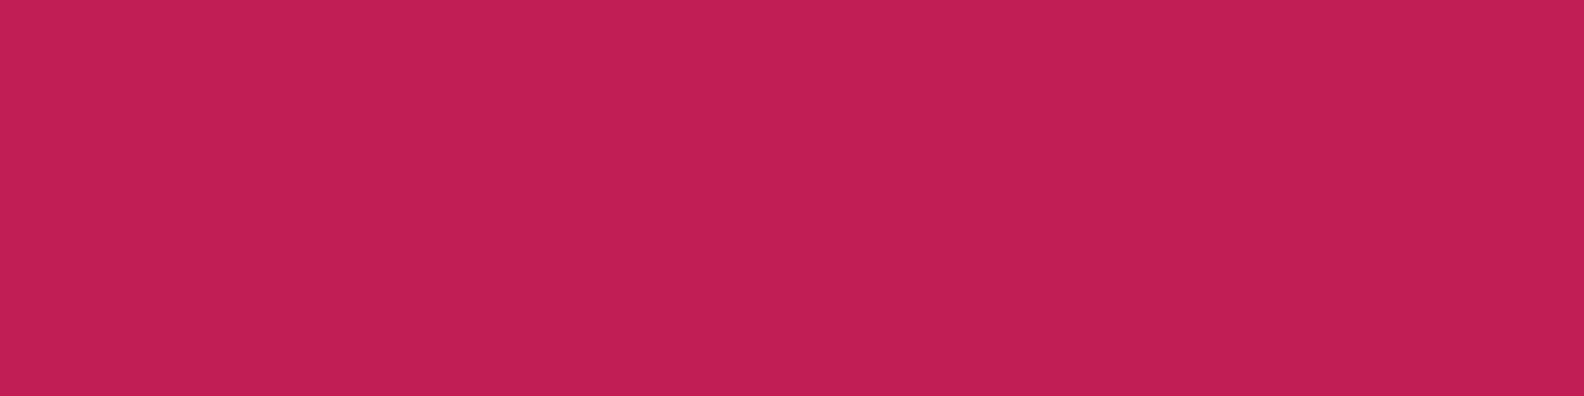 1584x396 Rose Red Solid Color Background